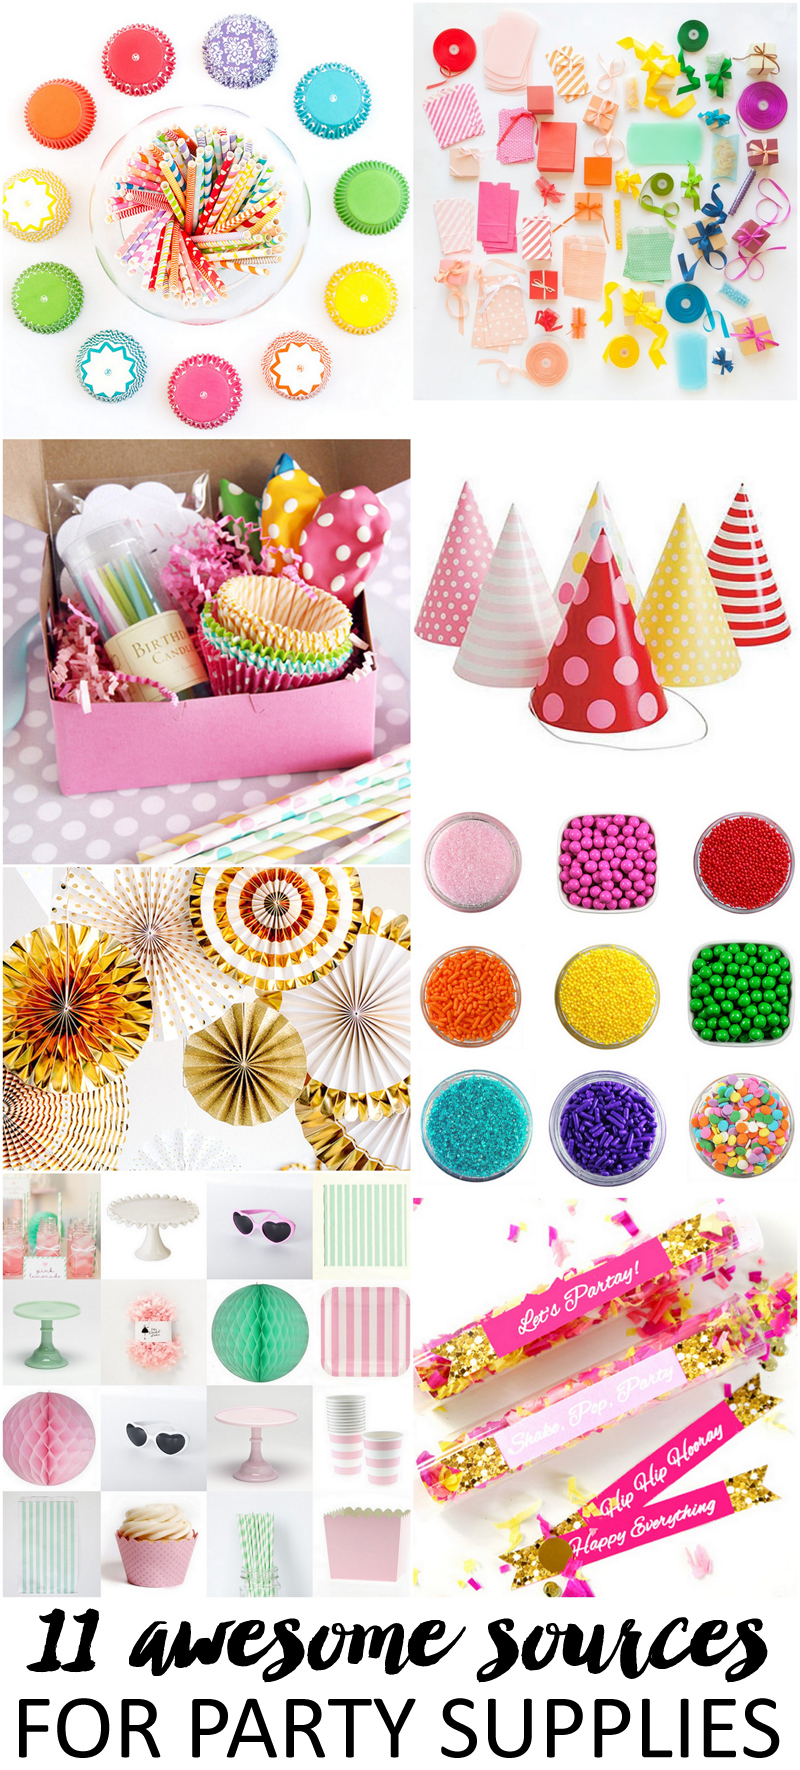 happy birthday party boxes ; 11-Awesome-Sources-for-Party-Supplies